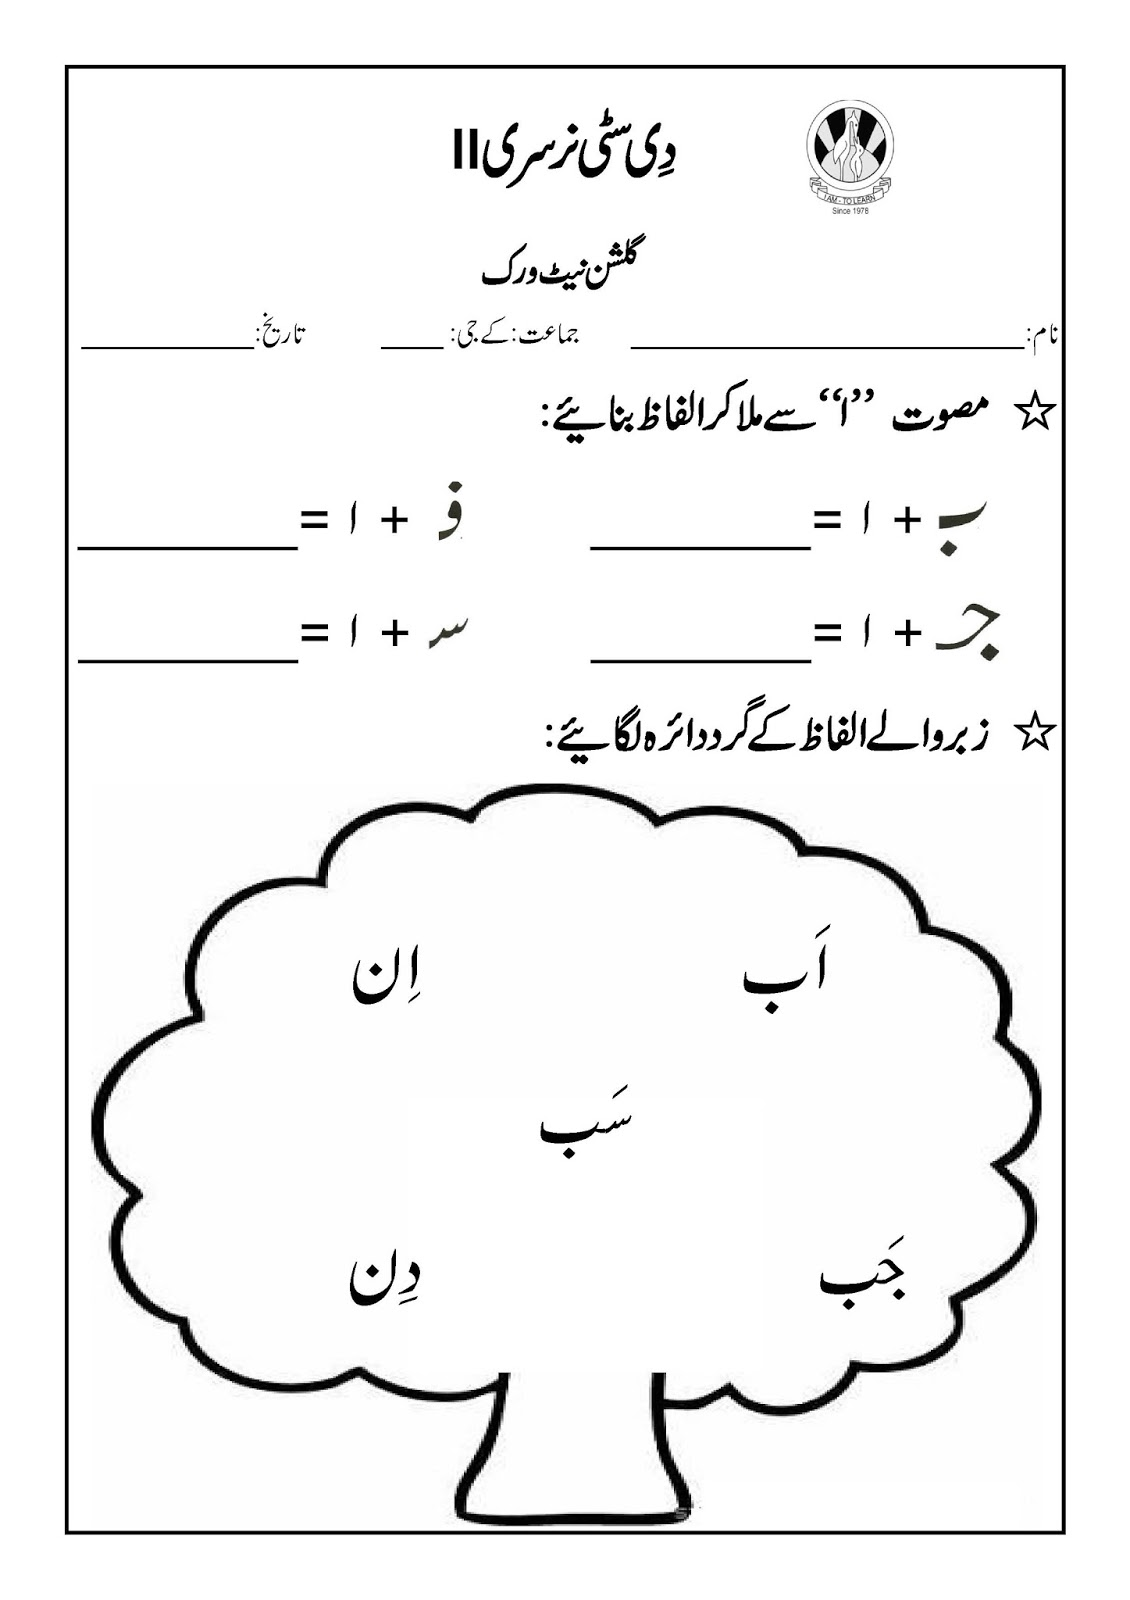 Urdu Haroof Matching Worksheet